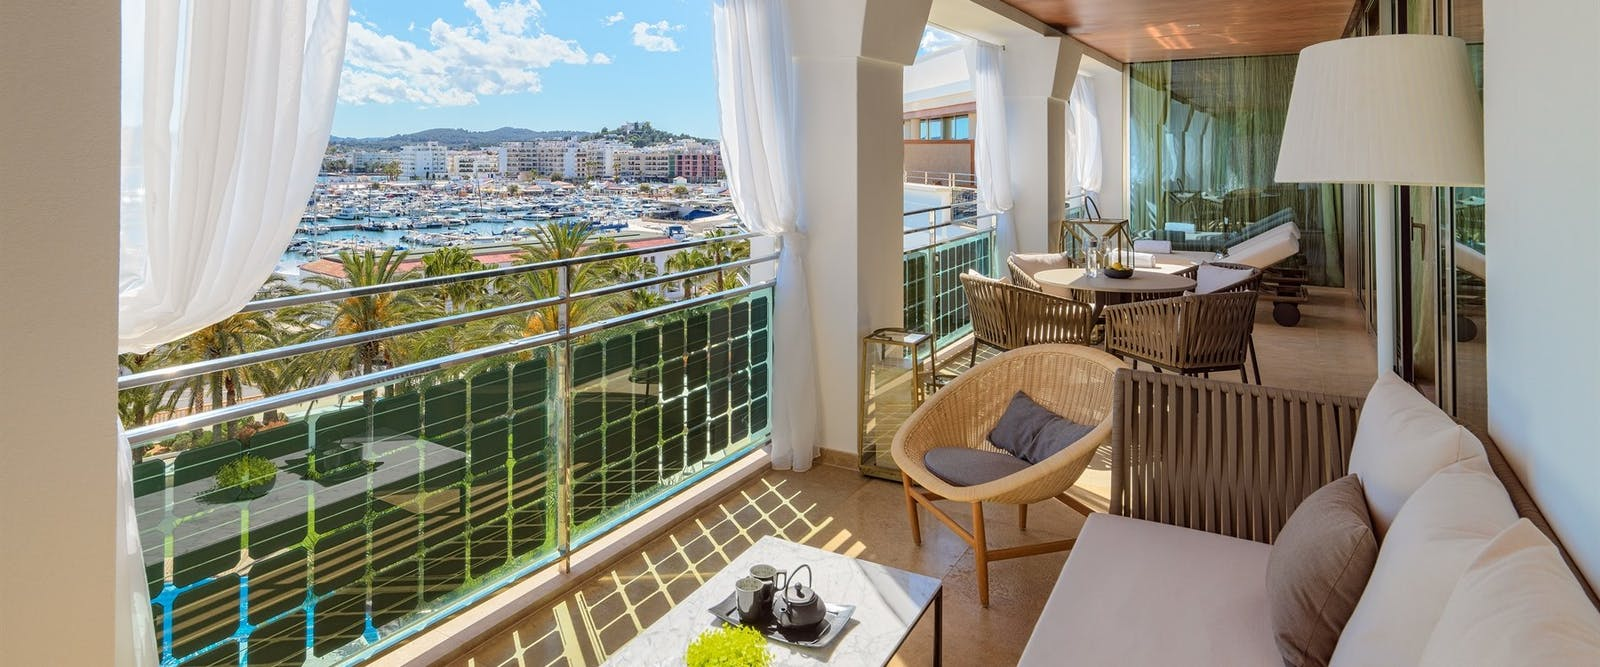 Terrace Suite at Hotel Aguas de Ibiza, Spain